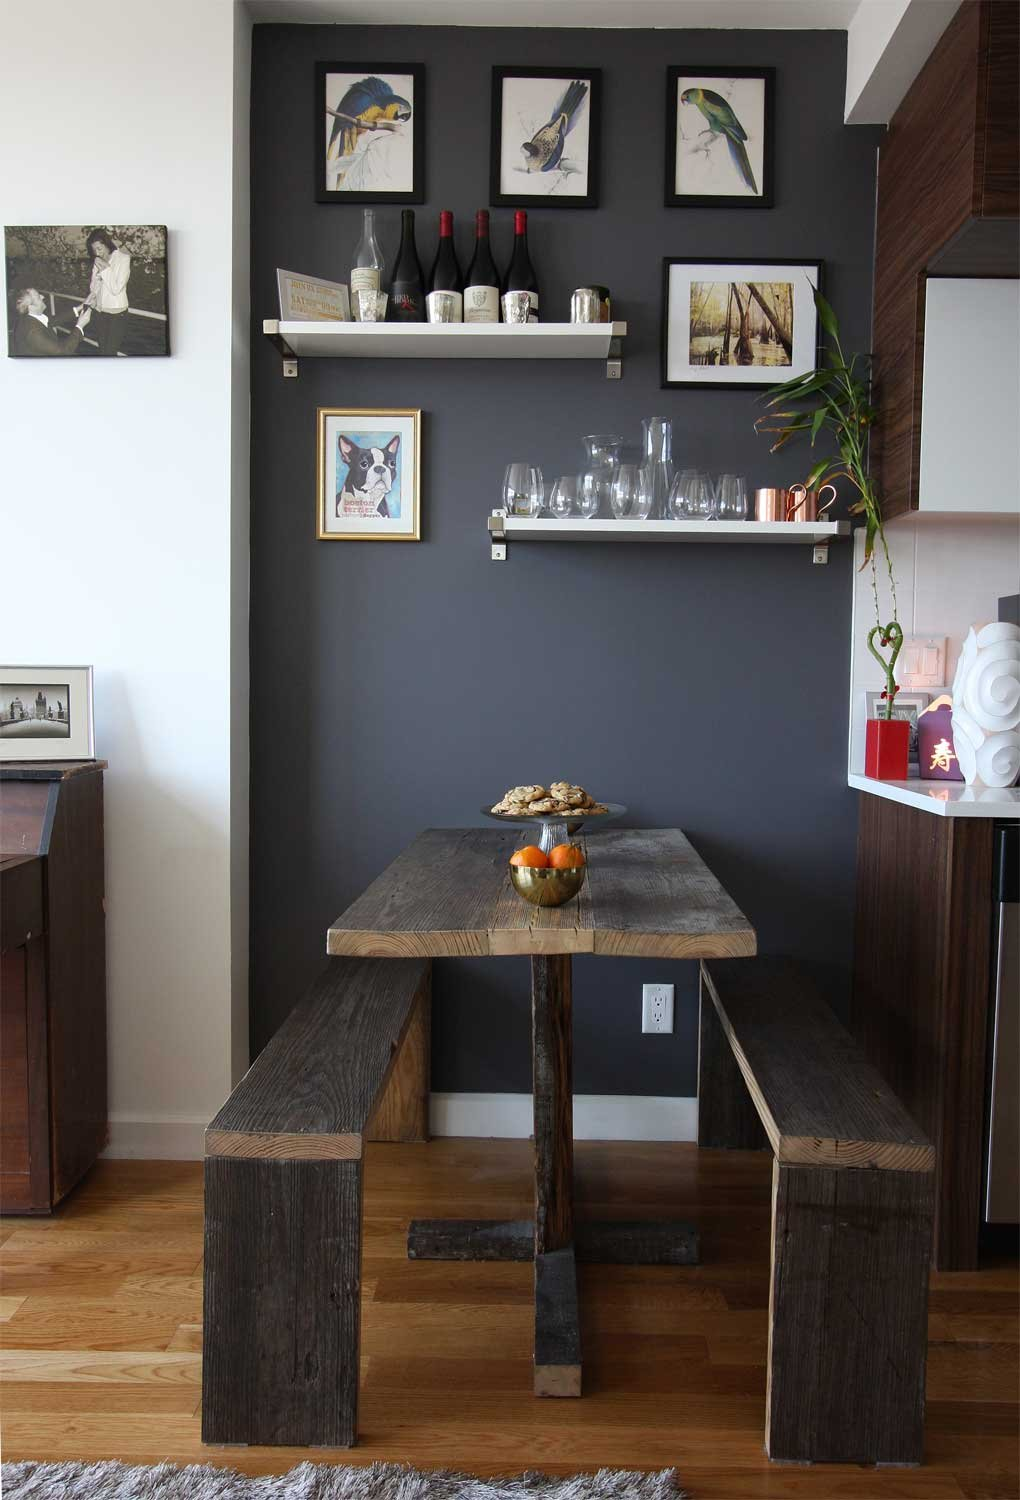 How To Live Without A Dining Room Advice Ideas From 15 Of Our Best Posts Apartment Therapy